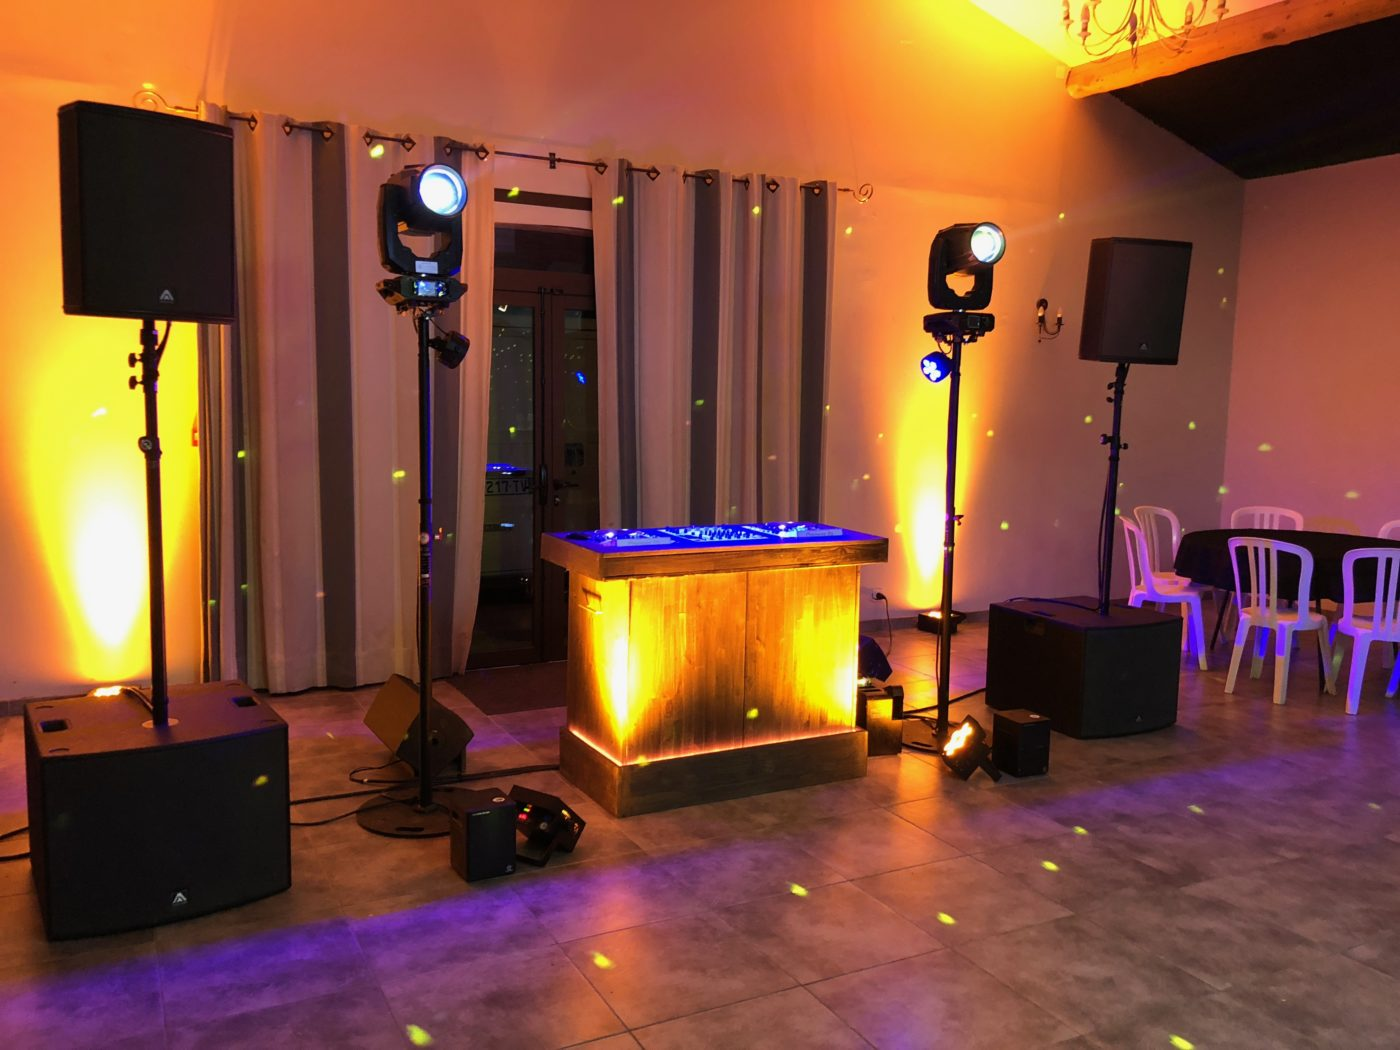 aps music dj mariage animation mariage musique mariage. Black Bedroom Furniture Sets. Home Design Ideas